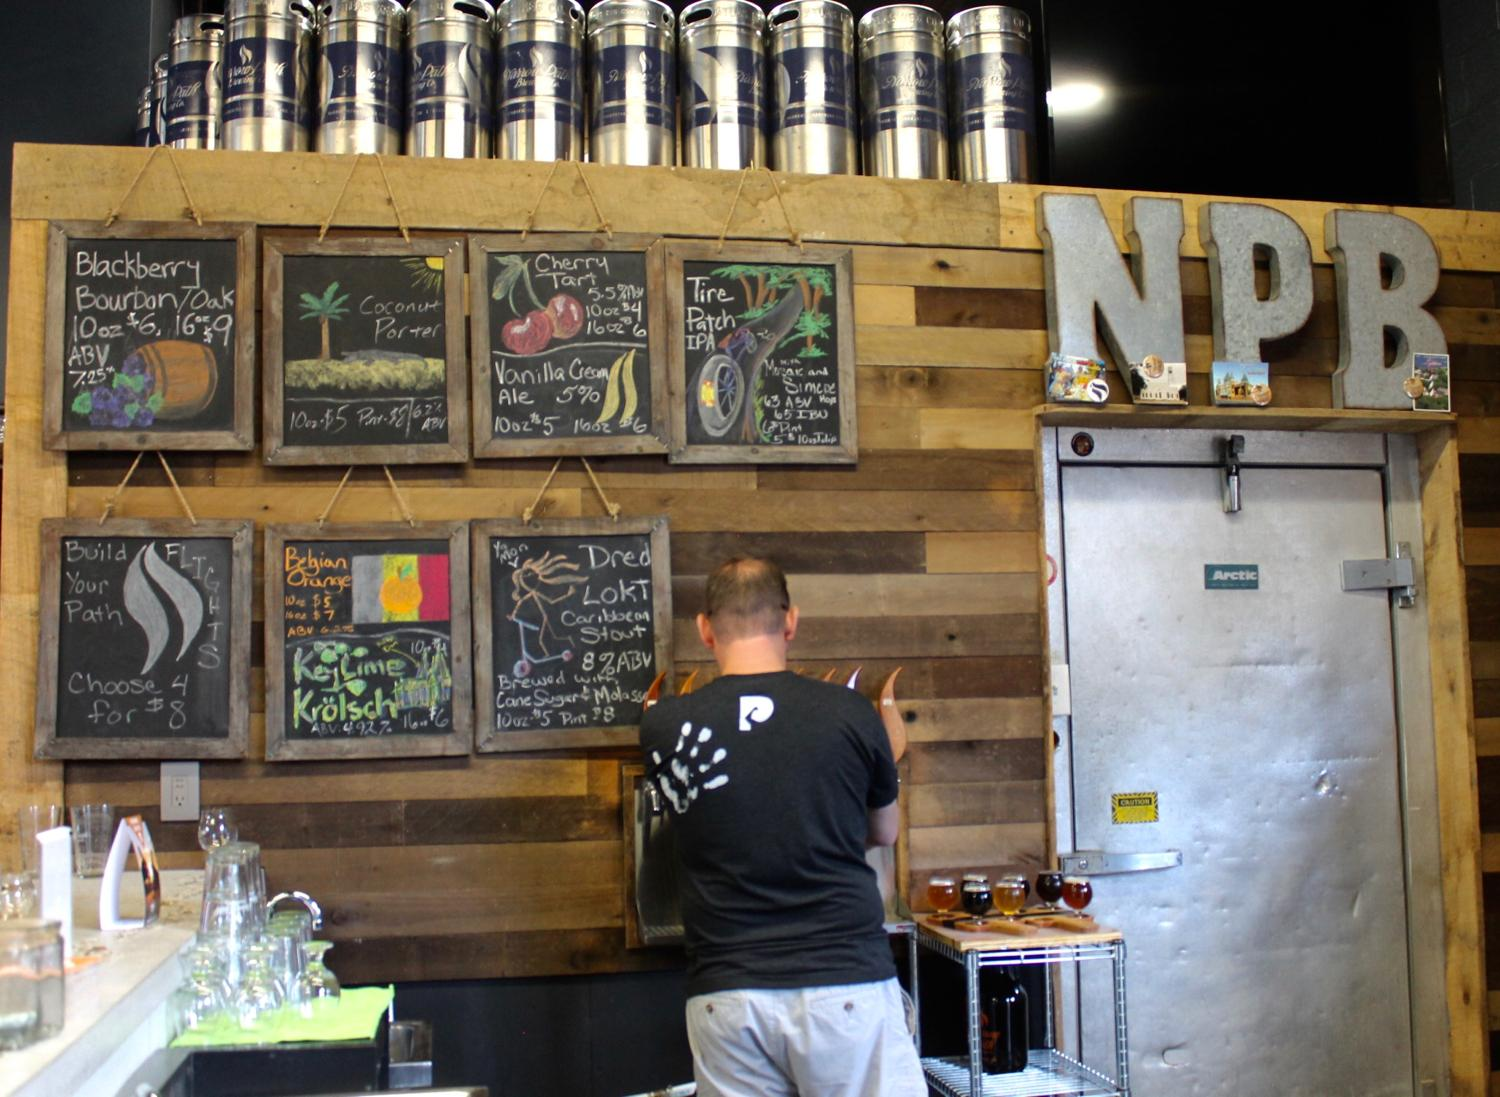 Narrow Path Brewing is a Loveland brewery dedicated to three ideals: craft, community, and cause. Besides brewing excellent beer, NPB seeks to celebrate the craft beer trend by making historic Loveland a destination for it. Additionally, the brewery supports non-profit organizations by donating proceeds to their causes. ADDRESS: 106 Karl Brown Way (45140) / Image: Rose Brewington // Published: 9.3.17